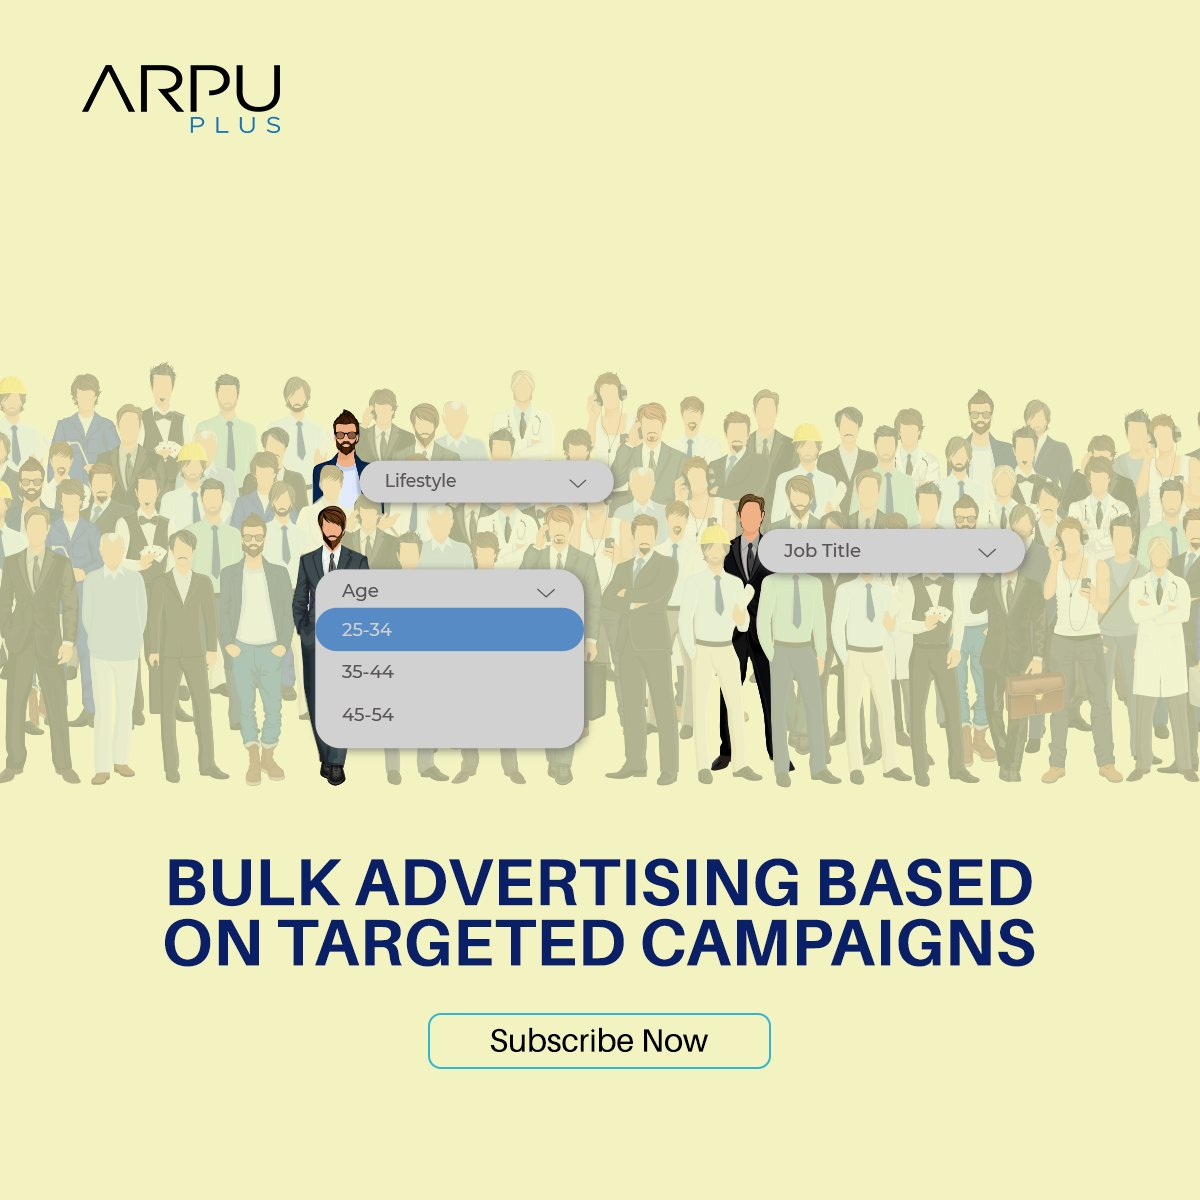 Our bulk advertising based on targeted audience is a great way to choose your desired list of customers and send your ads based on demographics and psychographics traits.   Subscribe now: https://t.co/YFCPMFKTeU  #ArpuPlus #MobileAdvertising #BulkSMS #Messaging #Marketing https://t.co/0DD6fRn3KD